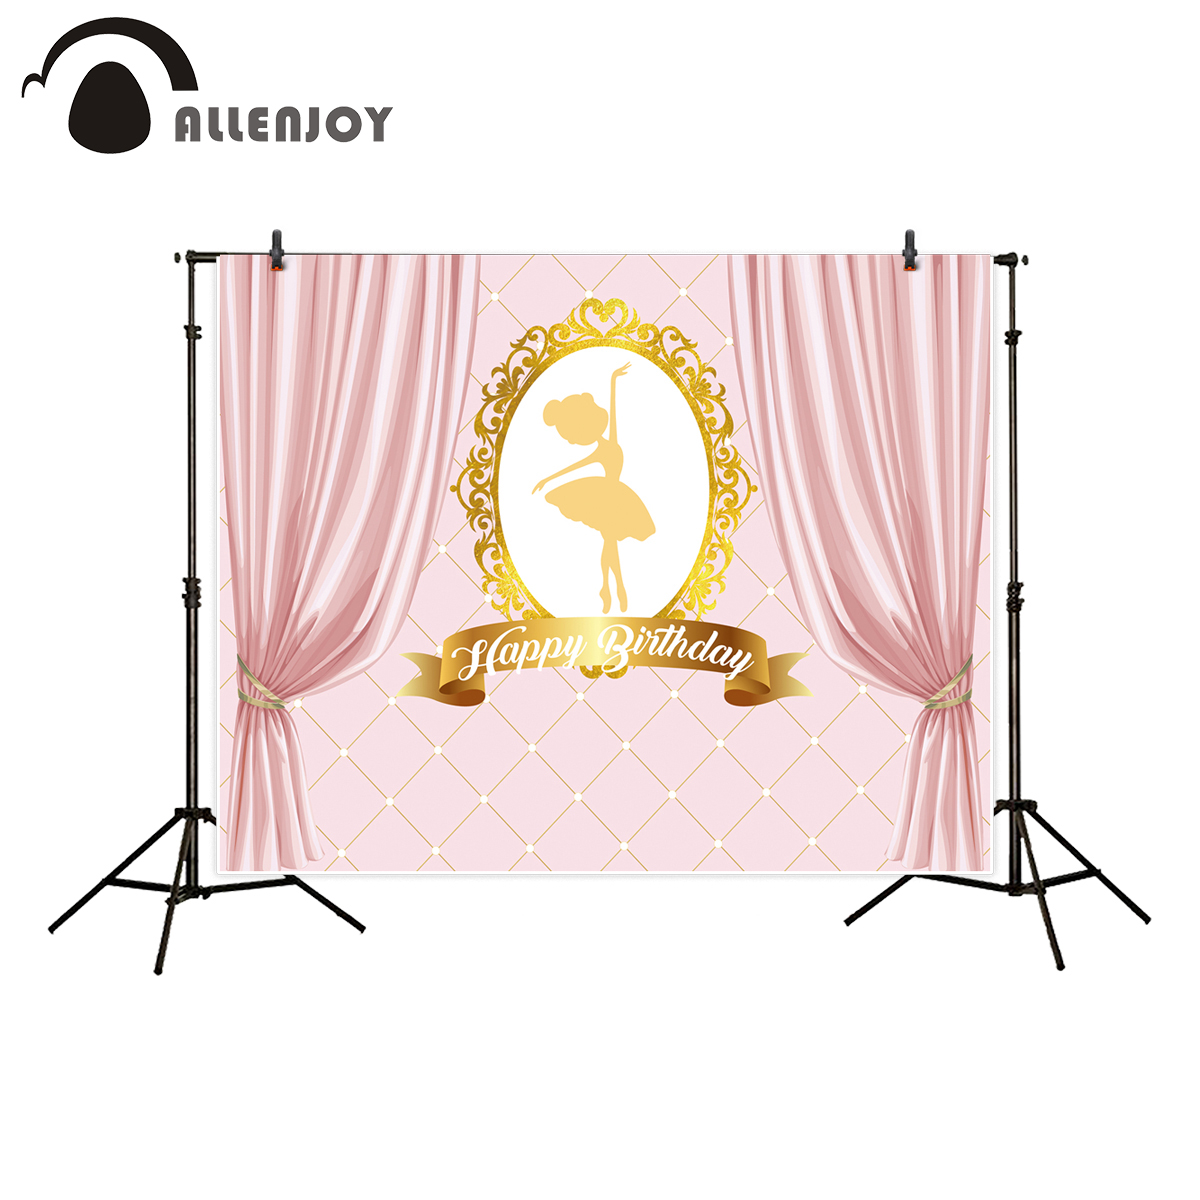 Allenjoy background for photo studio Ballerina girl theme birthday party pink photography backdrop printed new photography backdrop my little pony birthday party cartoon photo background baby pink prop background for photo studio photocall